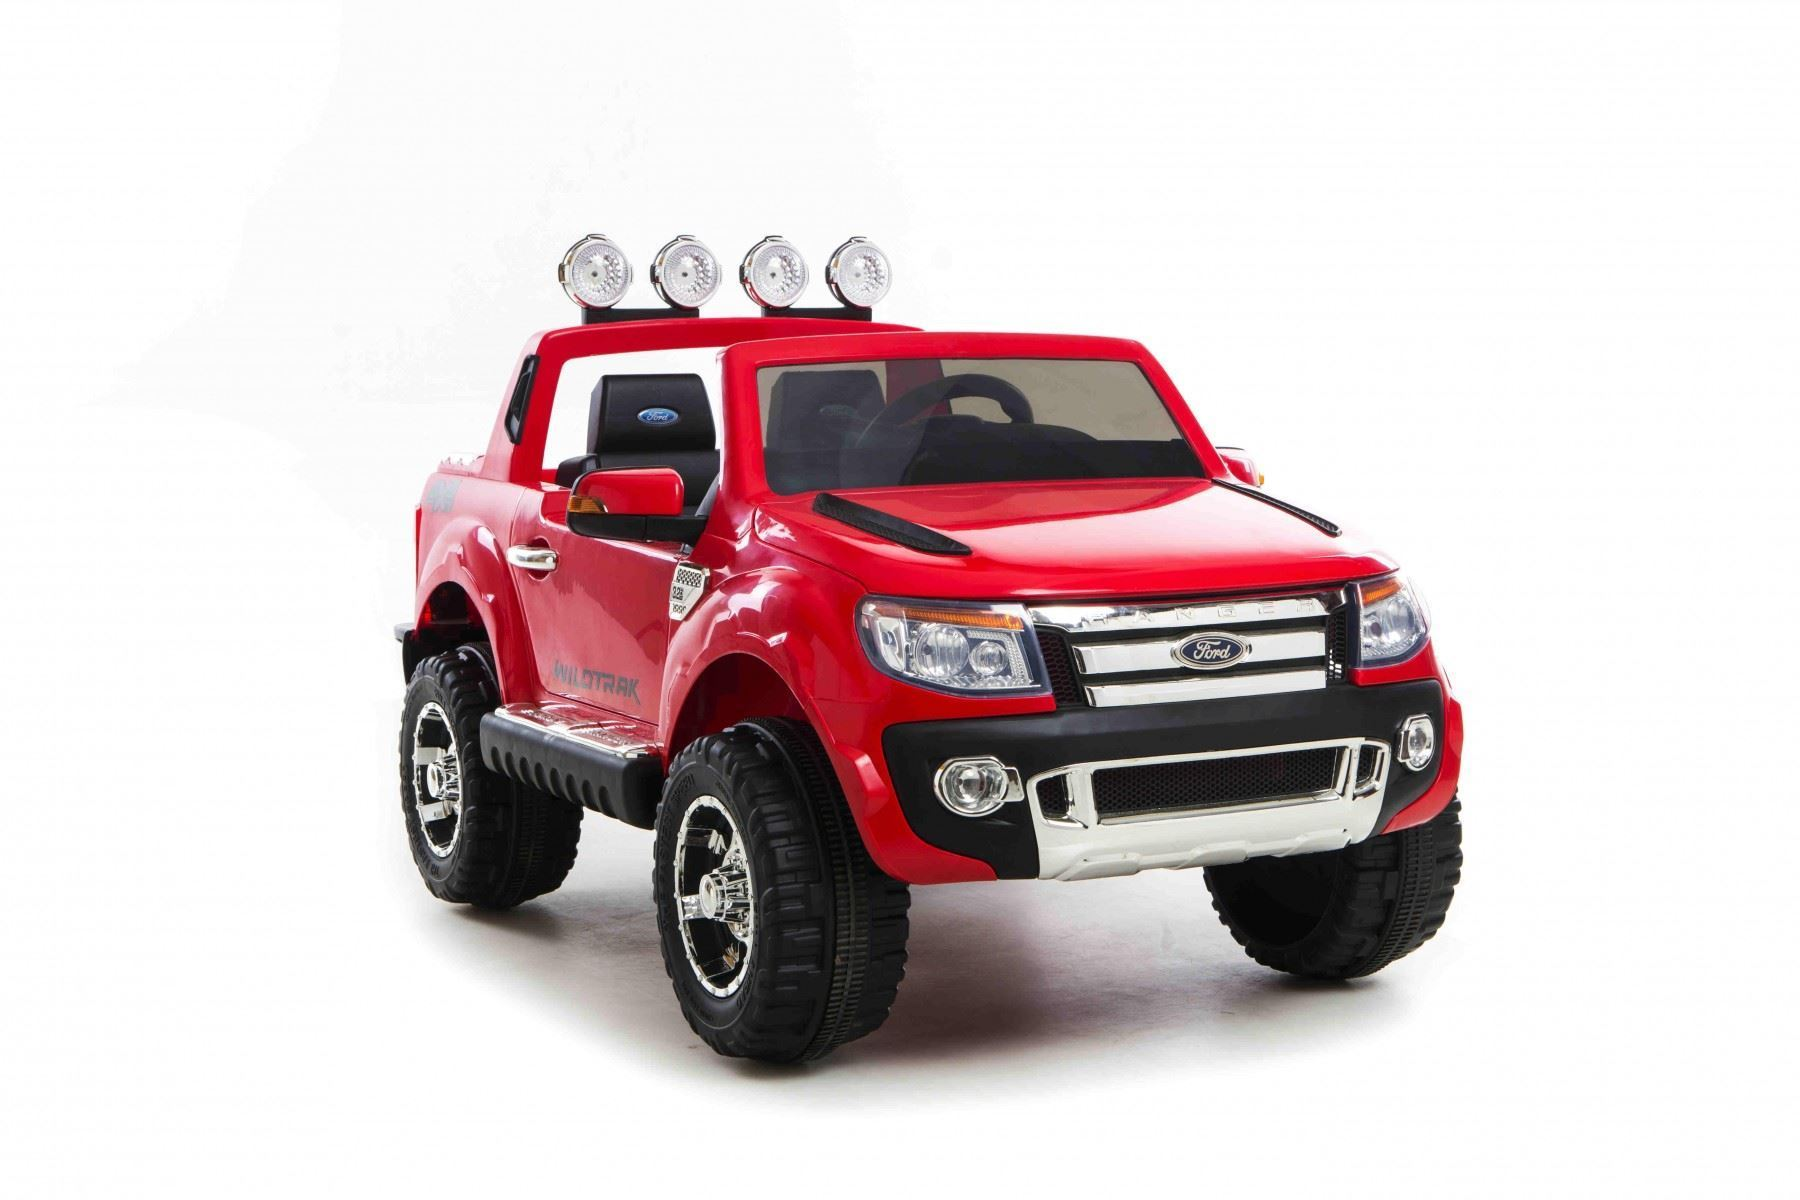 Masinuta electrica copii FORD RANGER RED